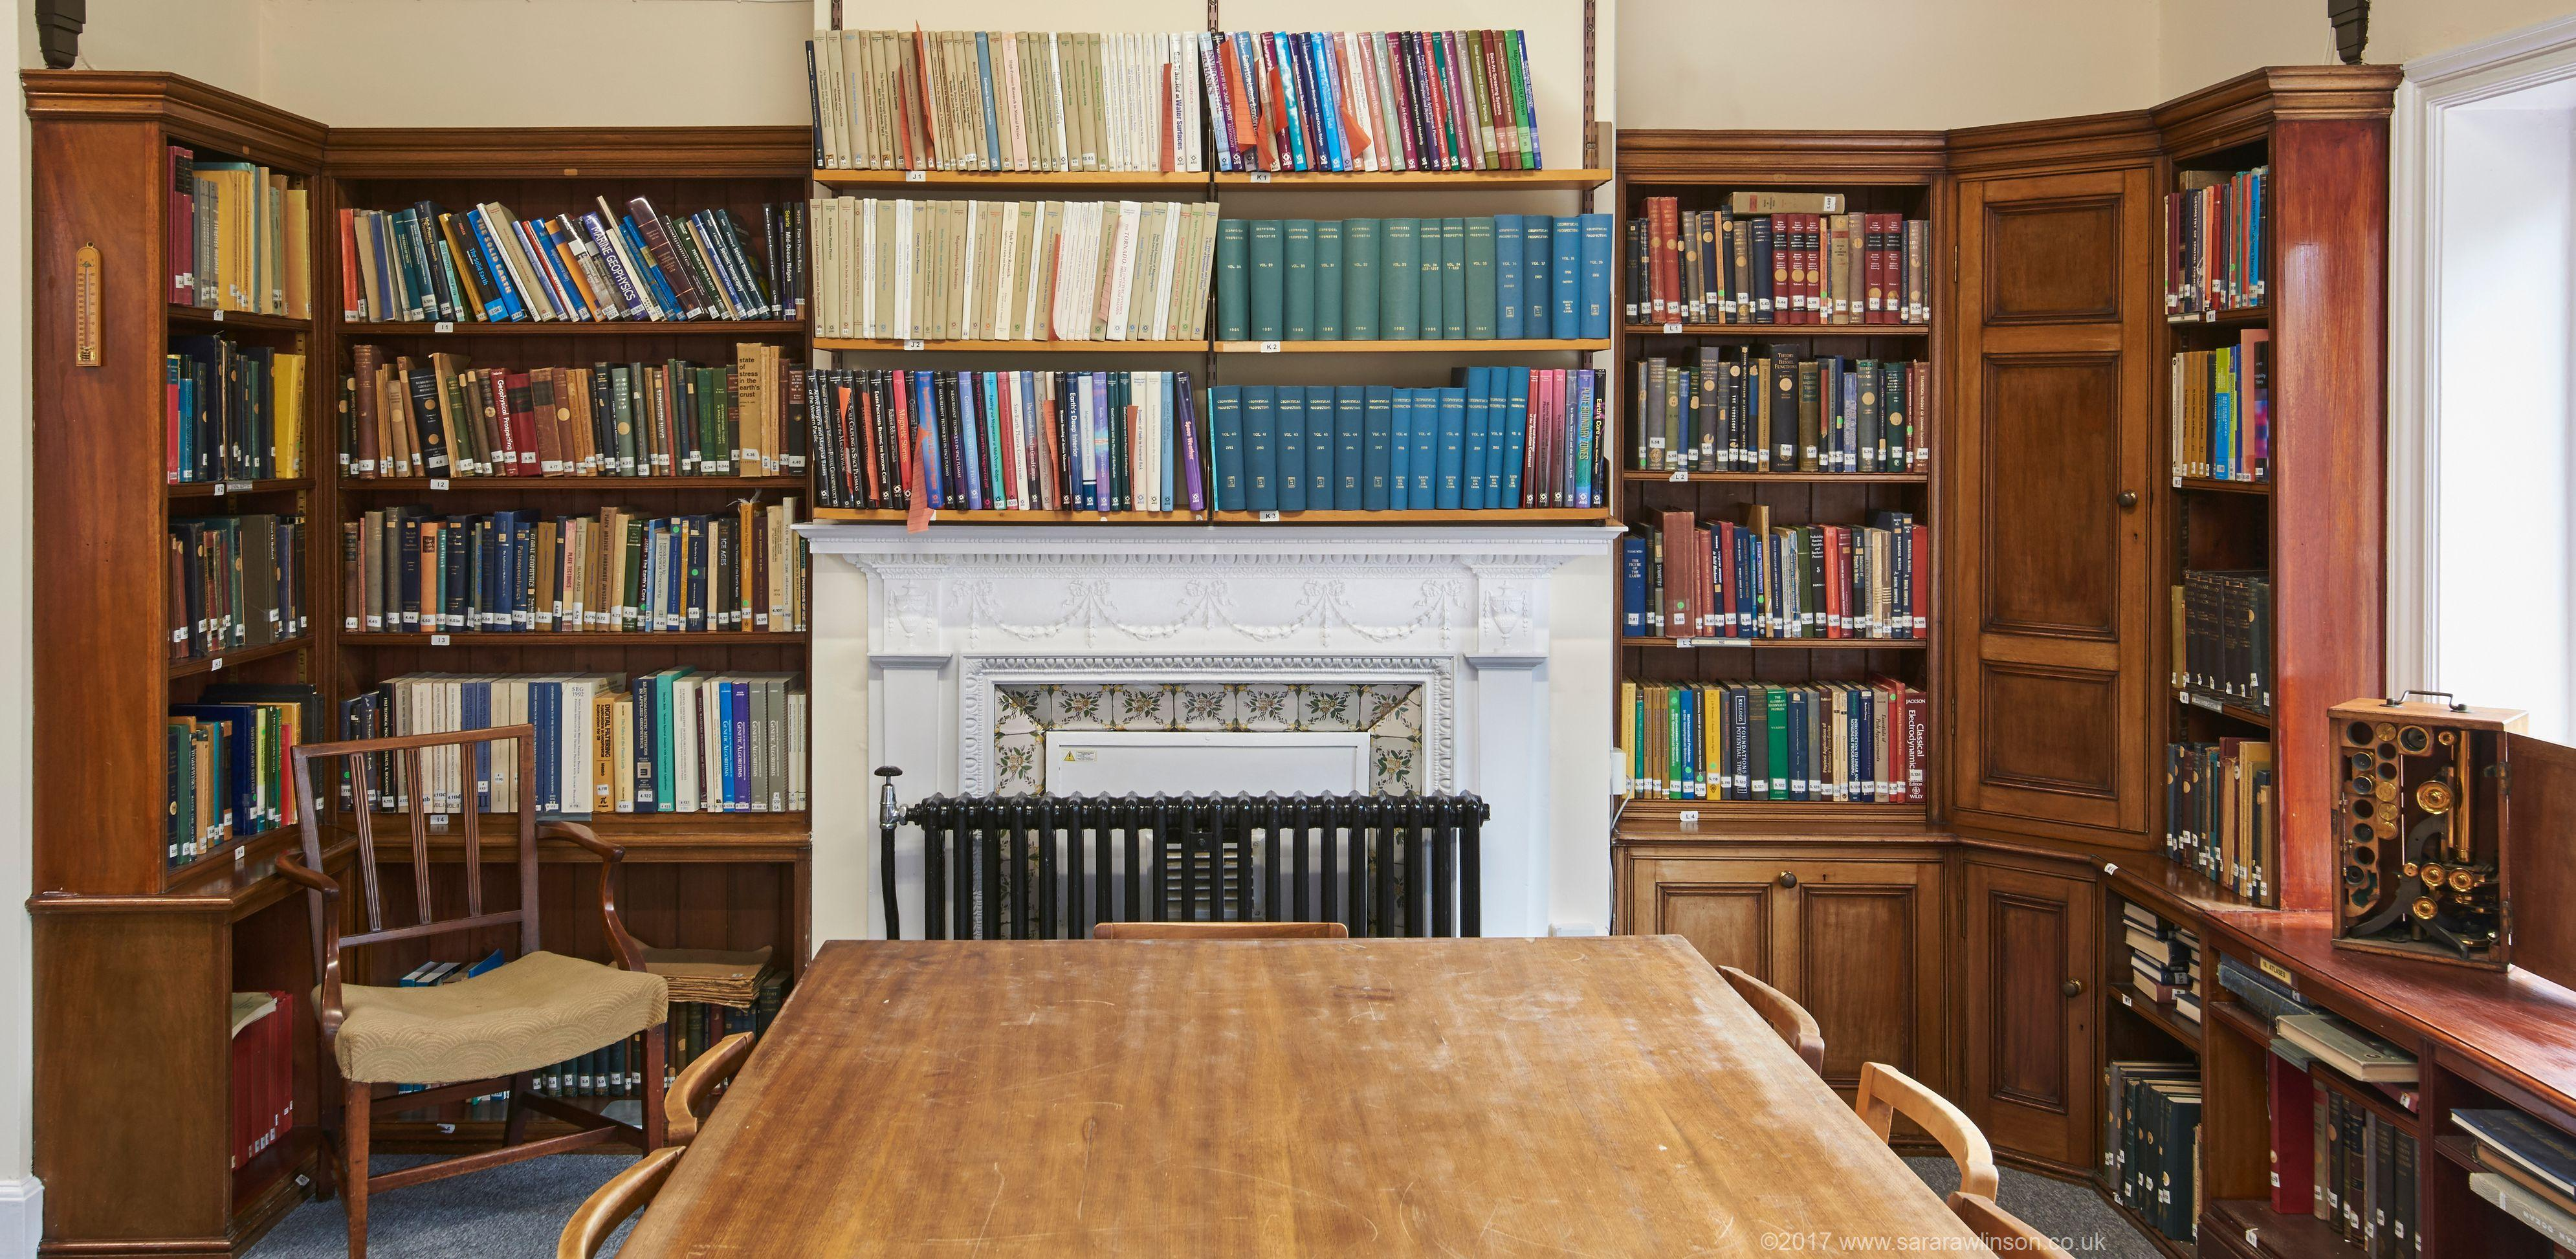 The Bullard library; image credit Rawlinson copyright